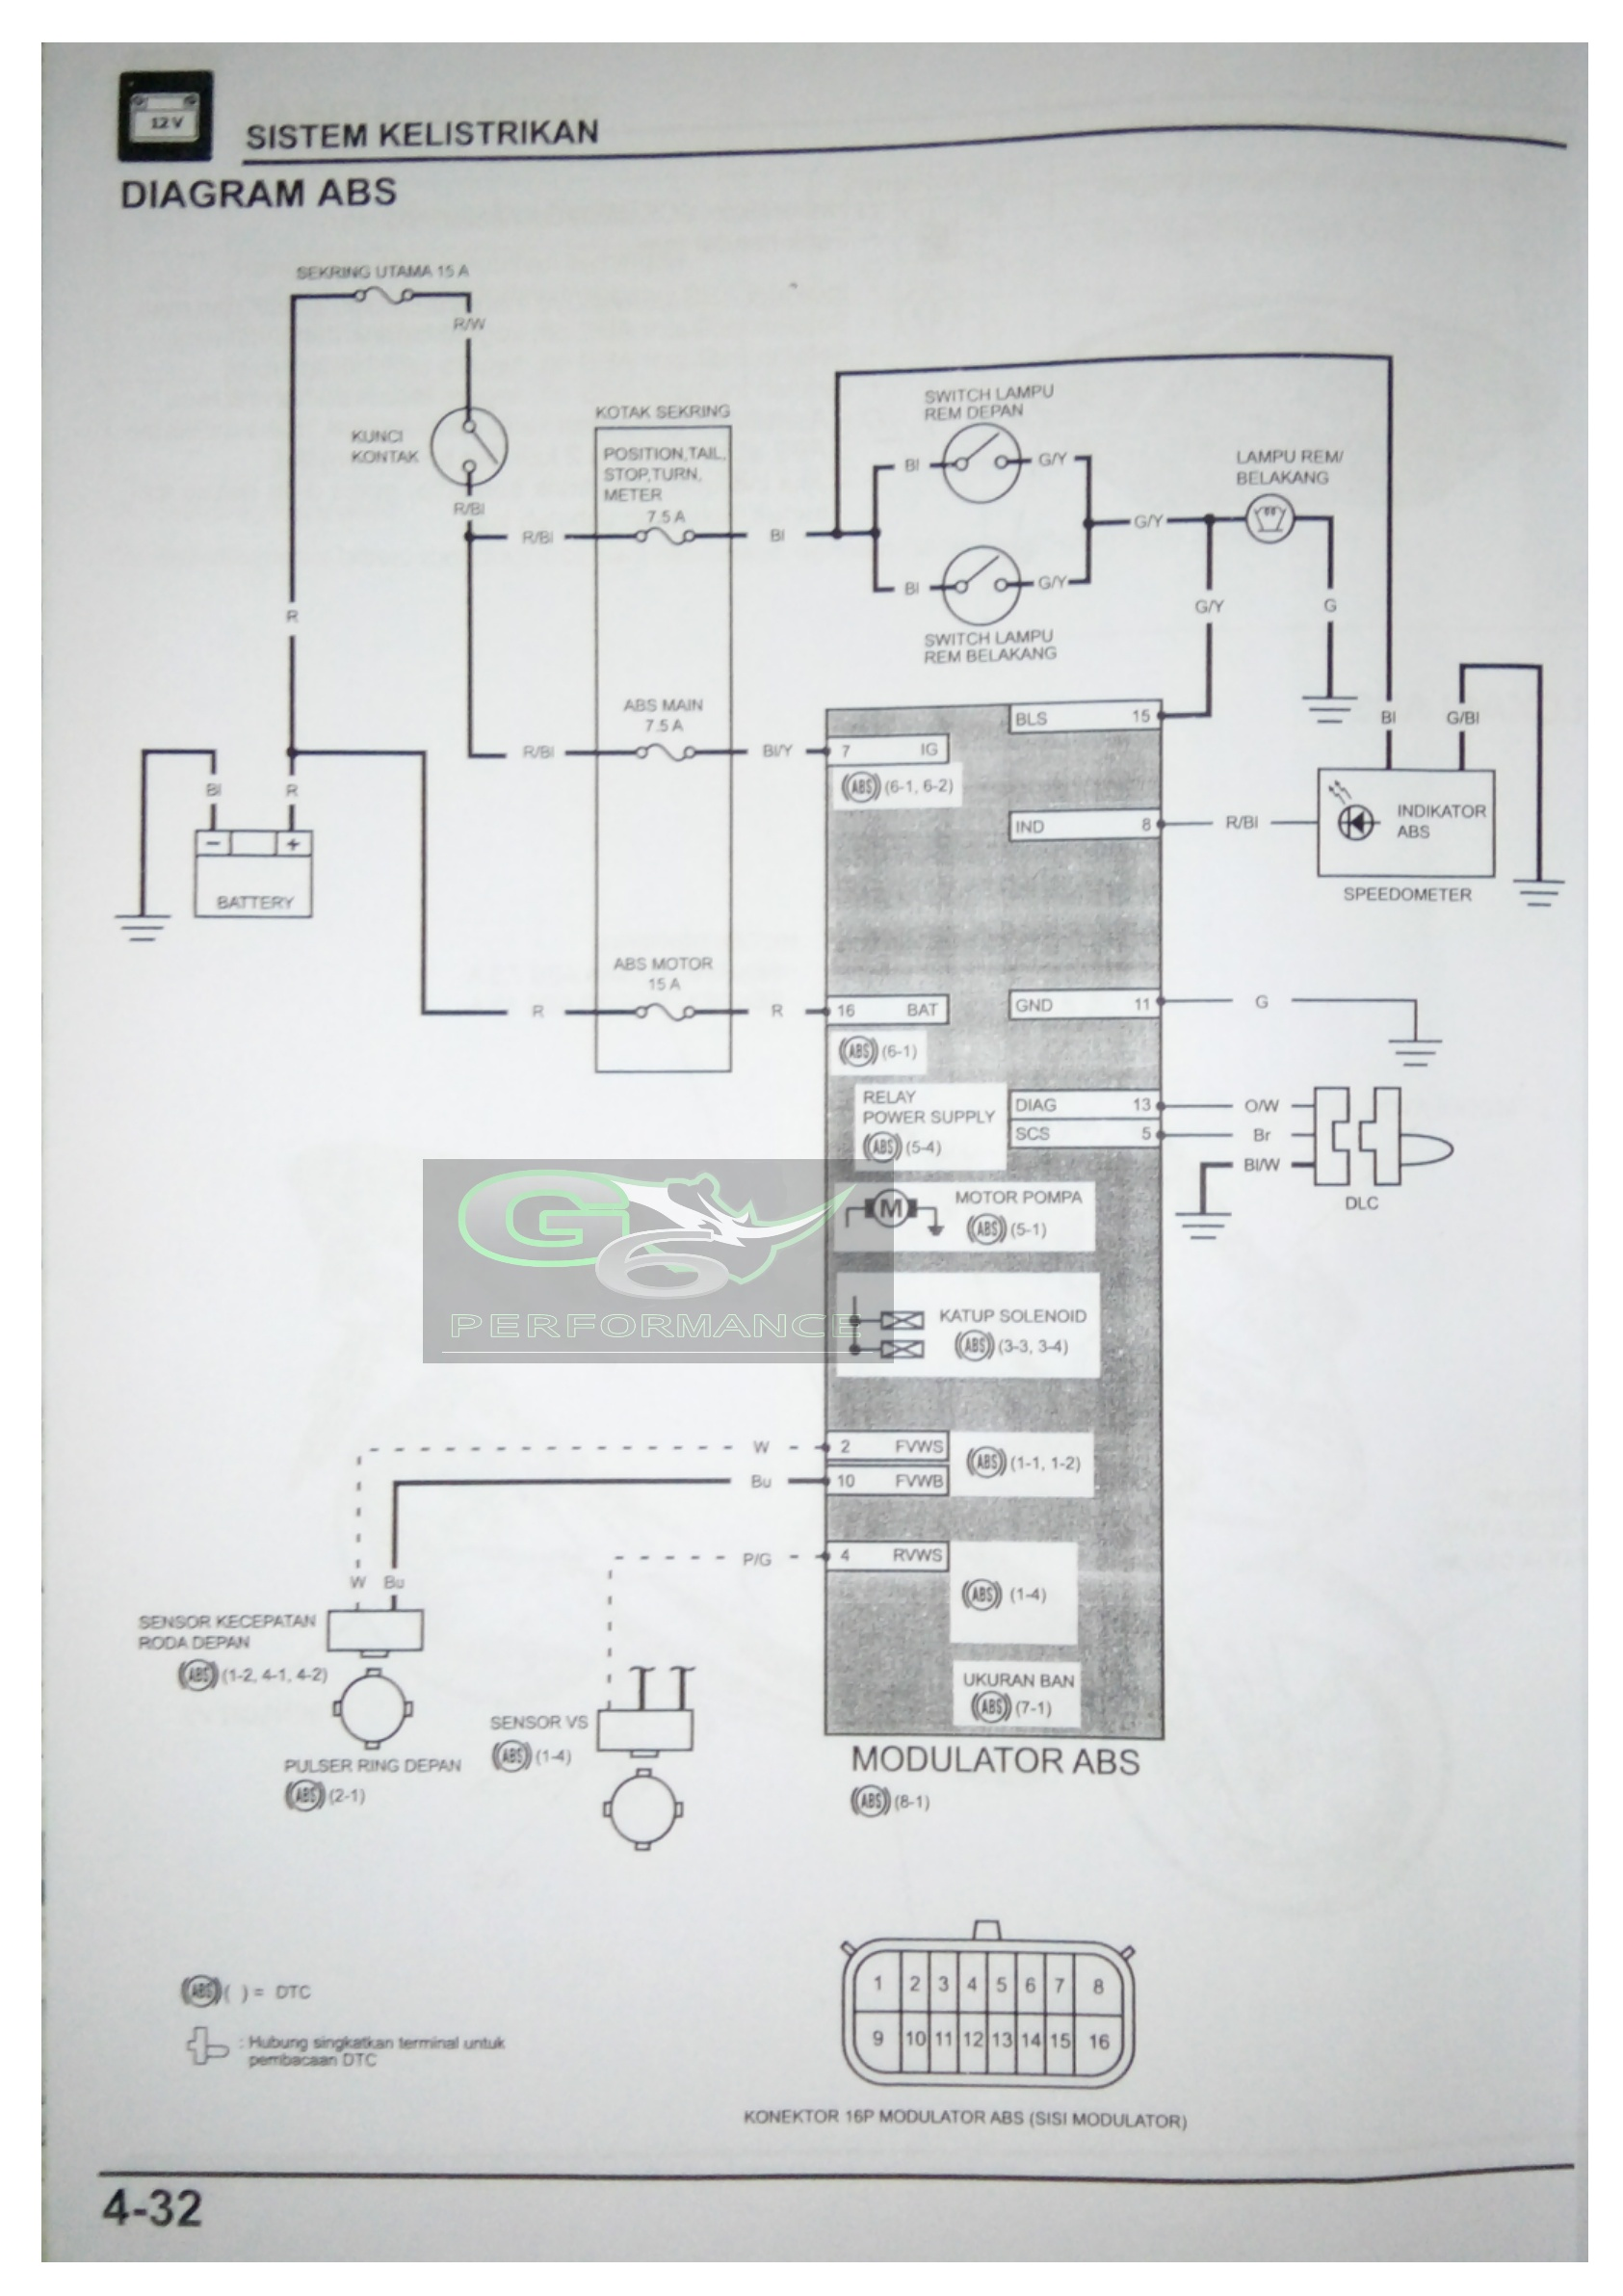 hight resolution of electric wiring system diagram honda new pcx 150 2018 gisix s blog wiring diagram honda pcx 150 wiring diagram honda pcx